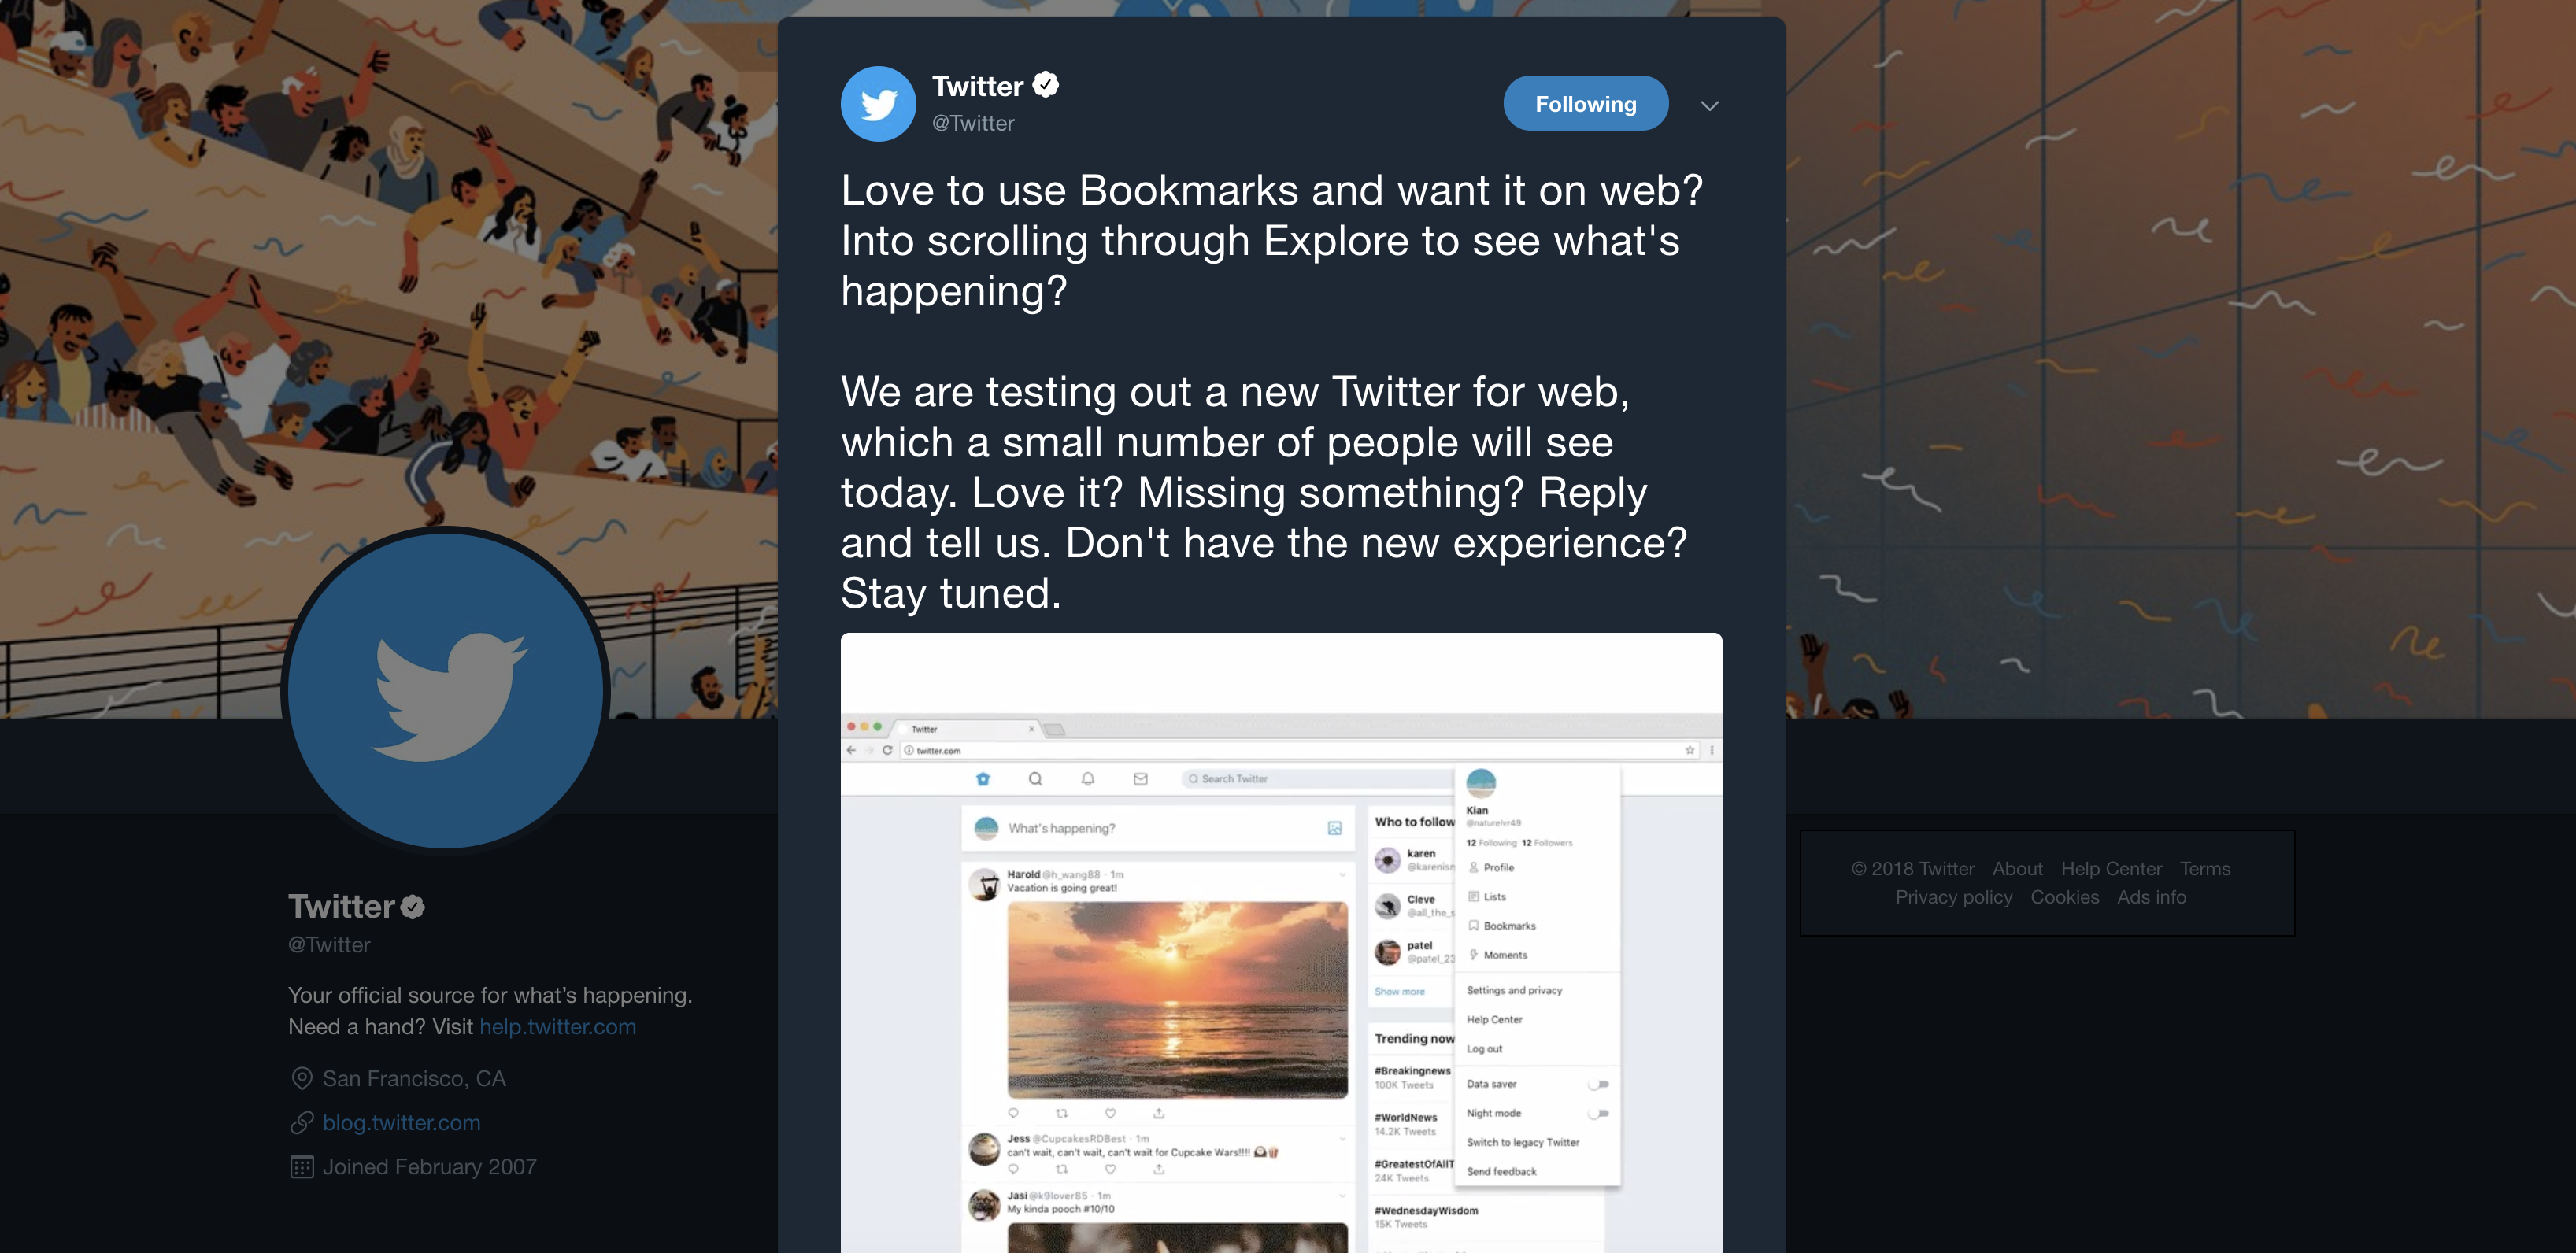 Are you ready for the new Twitter layout?